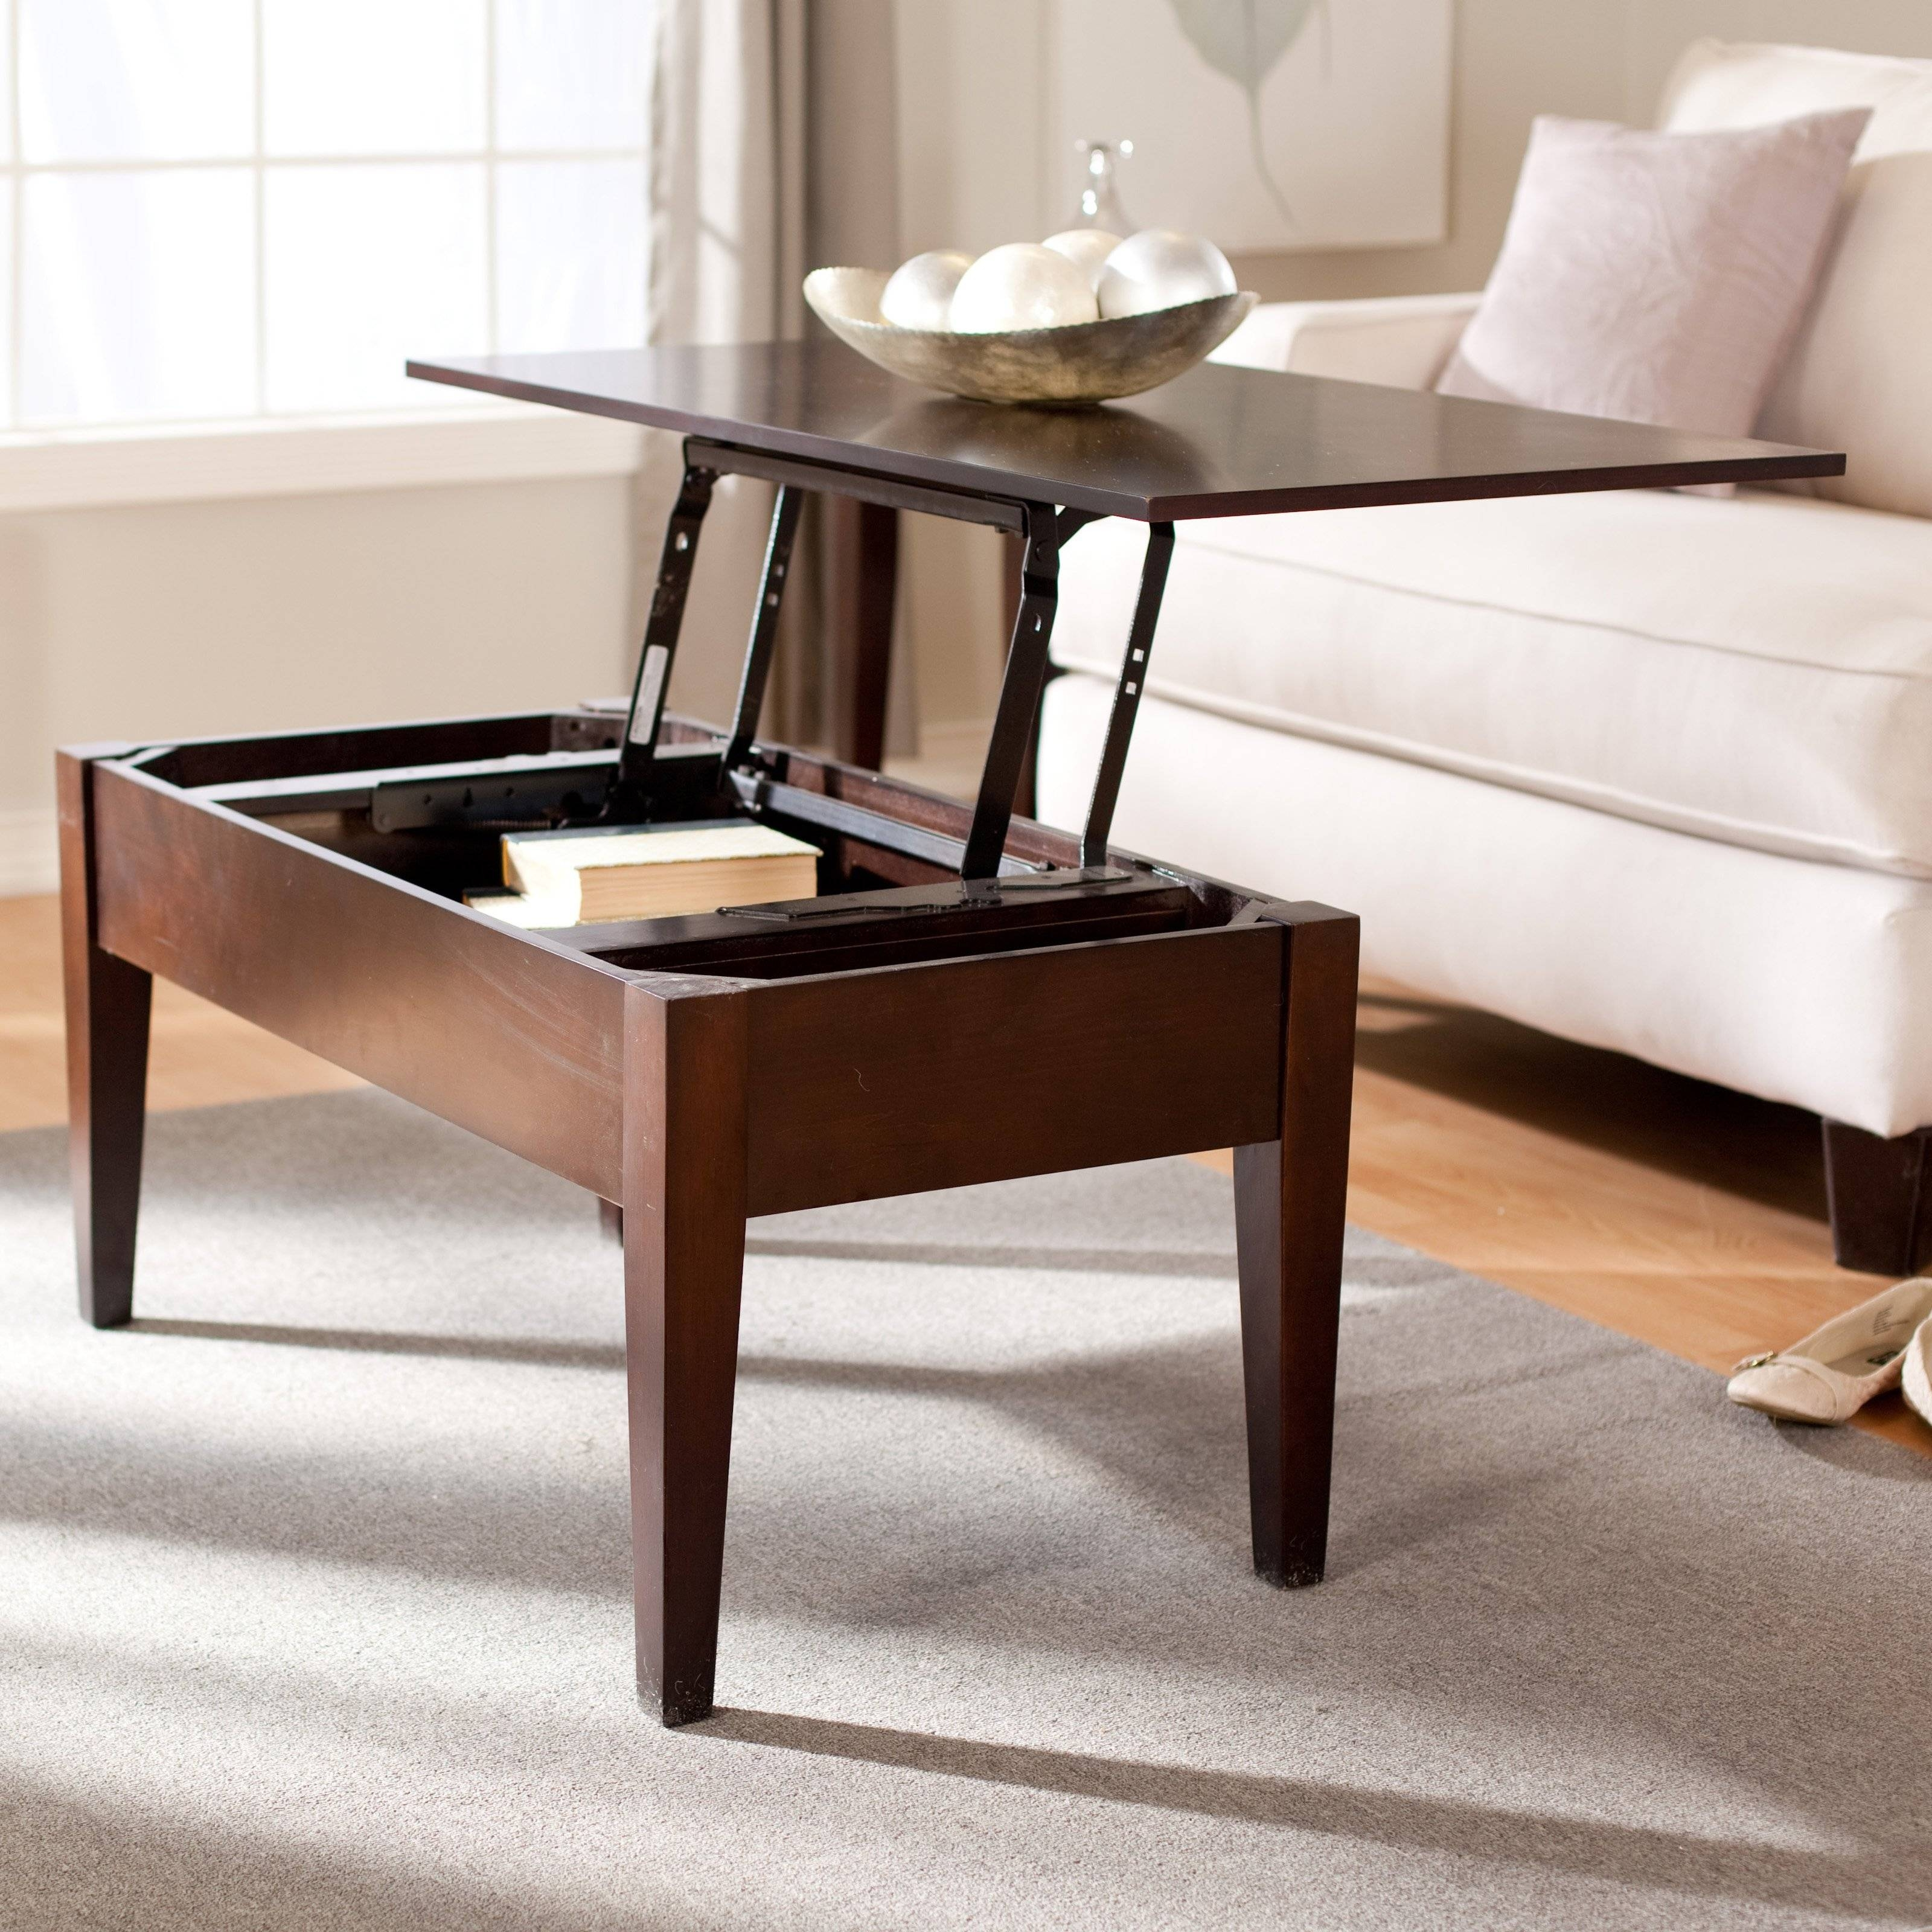 Turner Lift Top Coffee Table – Espresso | Hayneedle Inside Coffee Tables Extendable Top (View 29 of 30)